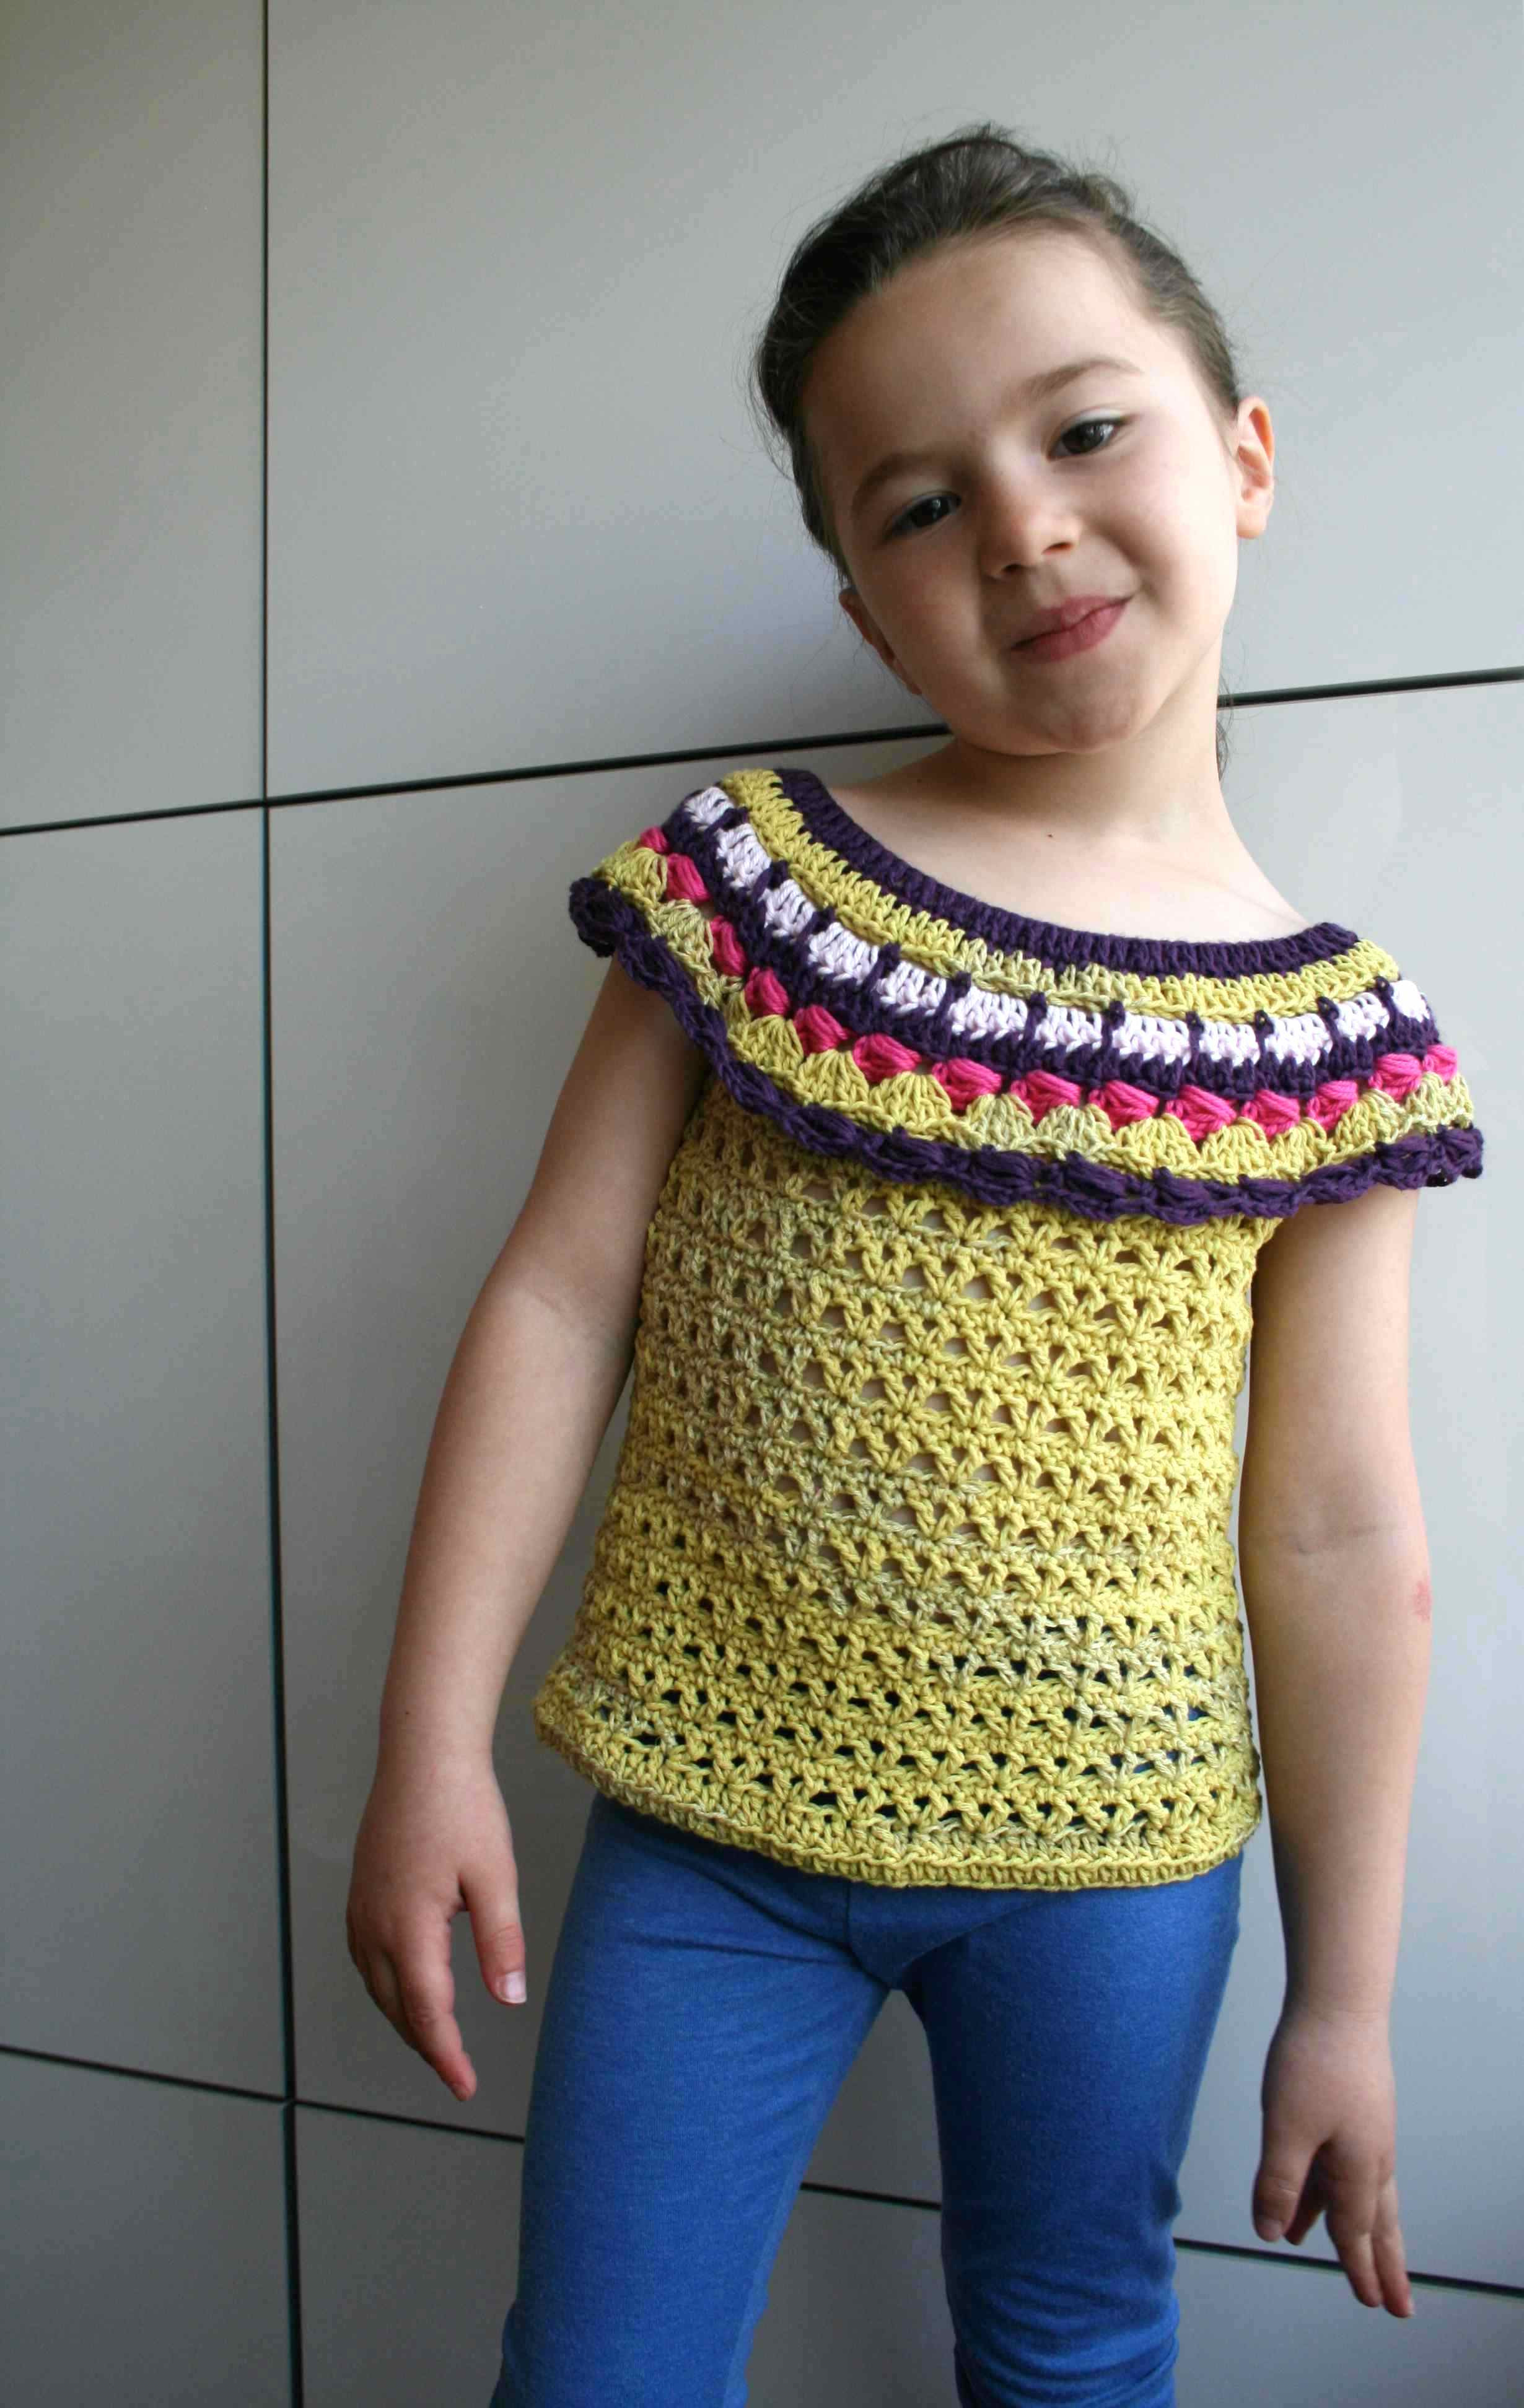 Luxury today Only $3 New Spring Summer Crochet top Pattern for Free Crochet Summer tops Patterns Of Incredible 43 Models Free Crochet Summer tops Patterns